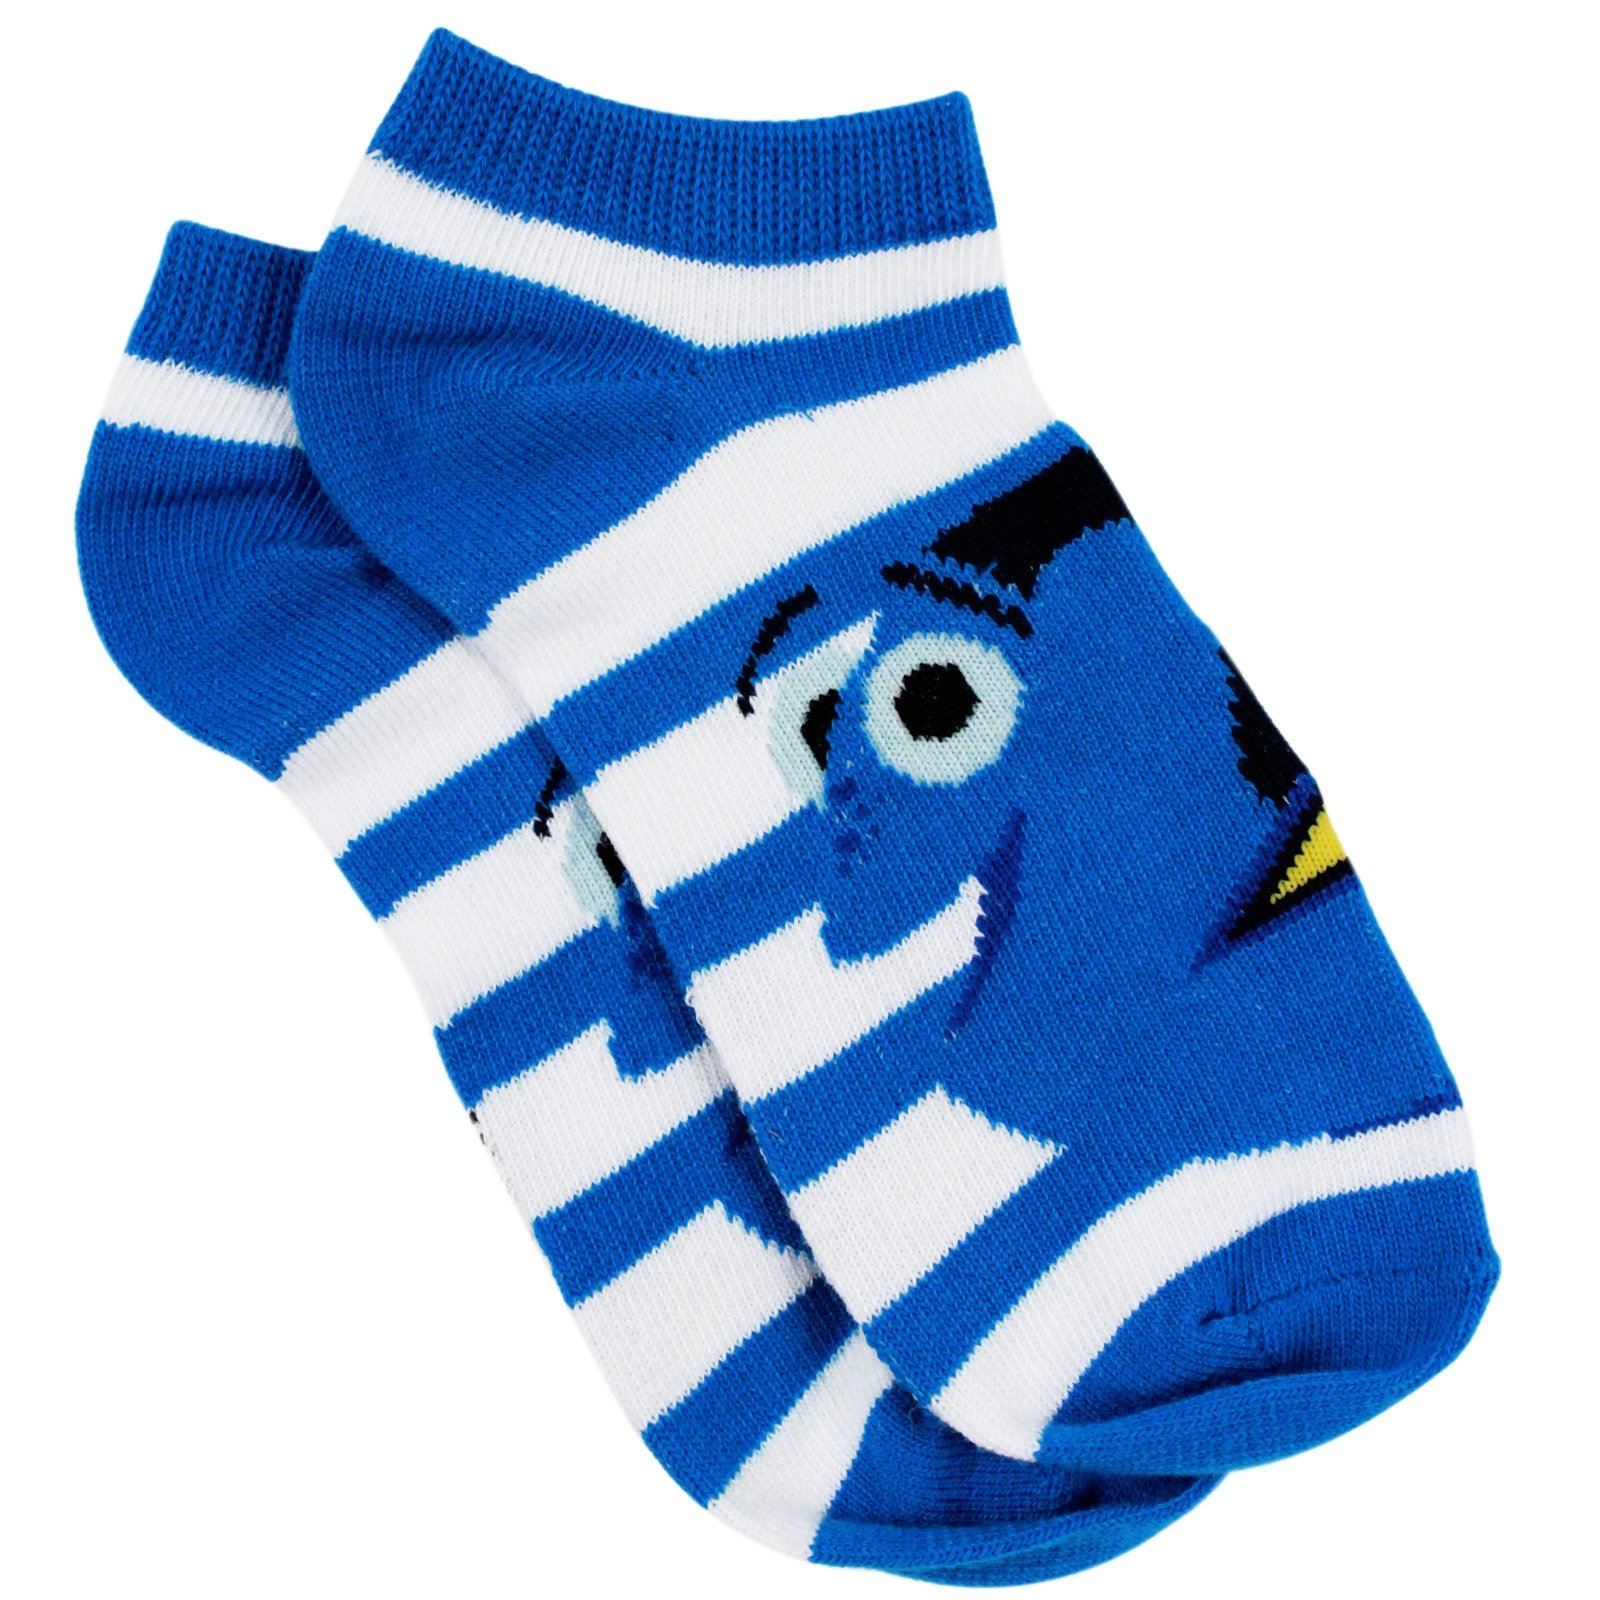 Disney Pixar Finding Dory Kids Ankle Socks Sizes 4-6